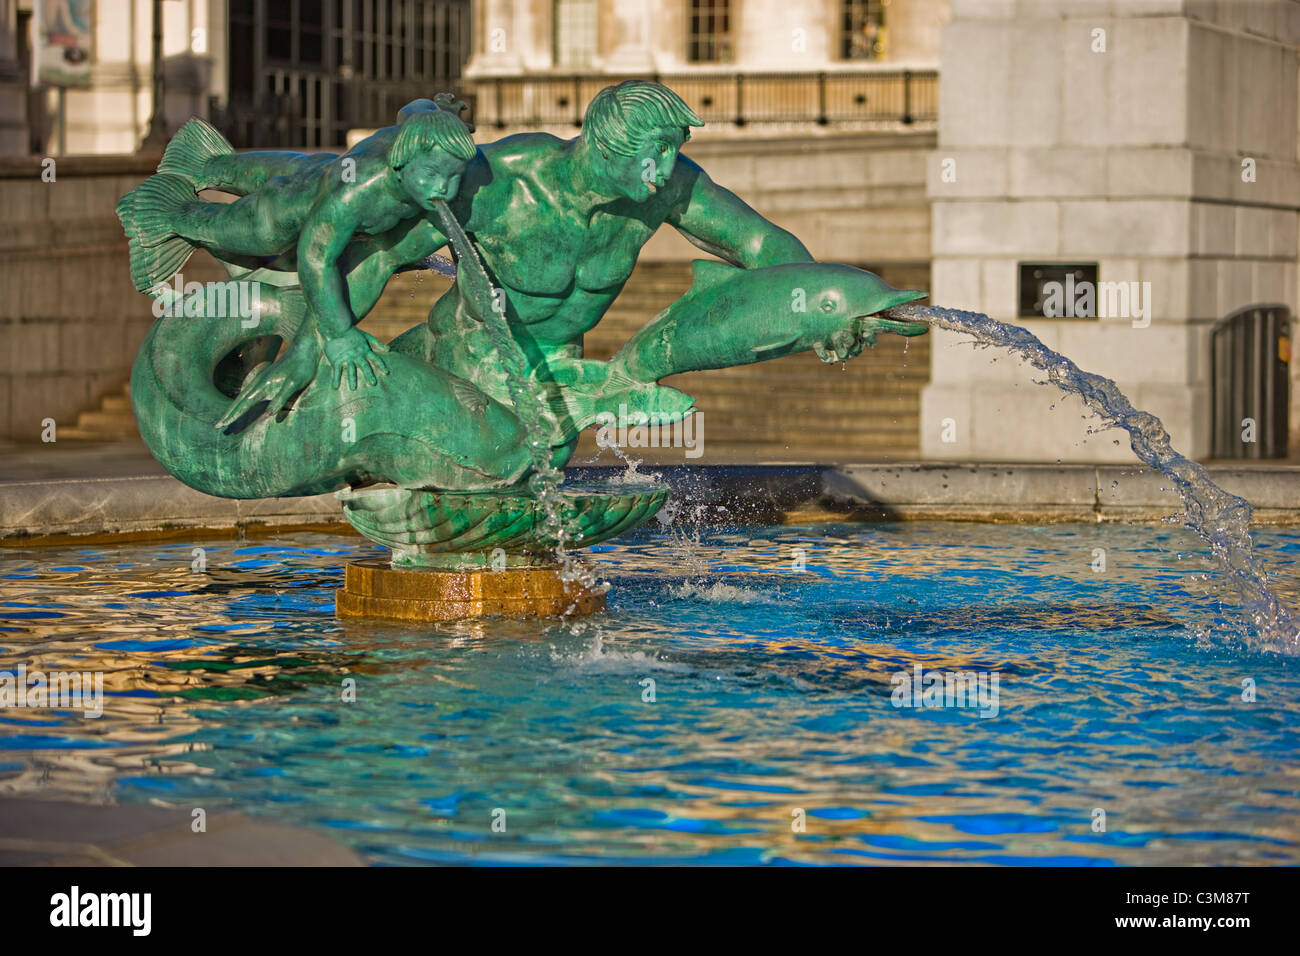 Brunnen am Trafalgar Square, City of London, UK Stockbild